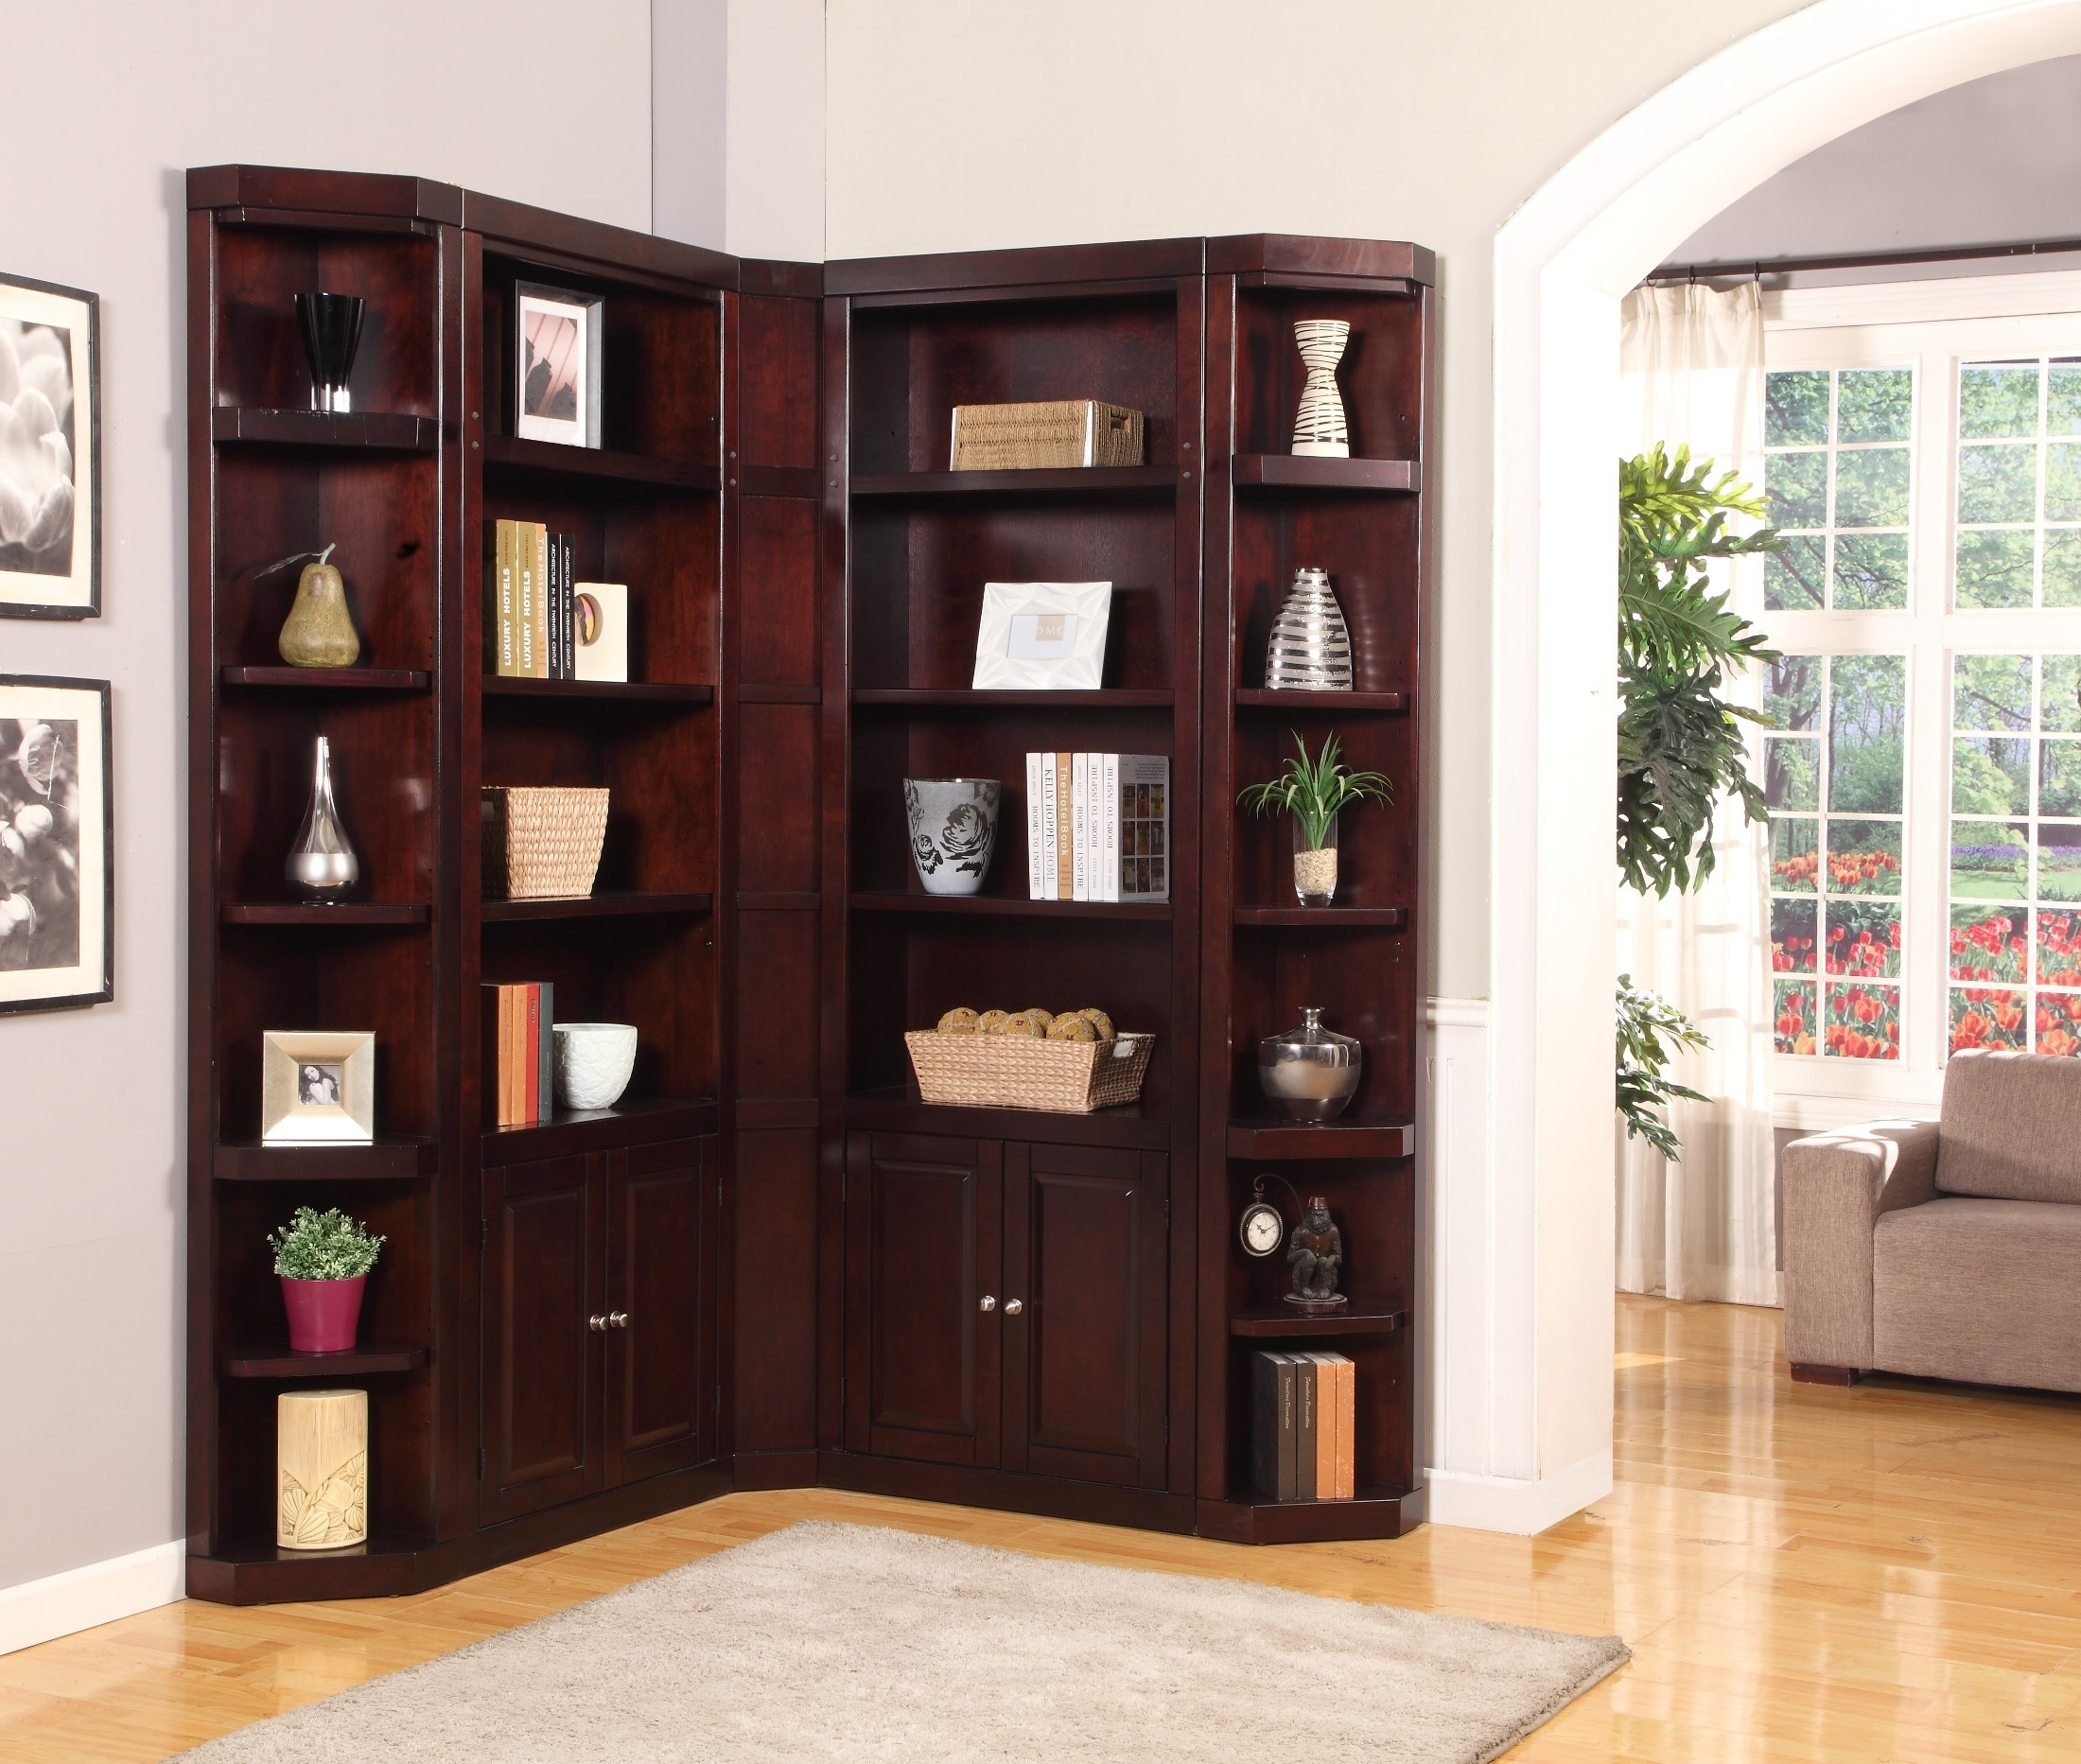 corner furniture boston l shape bookcase wall from parker house coleman